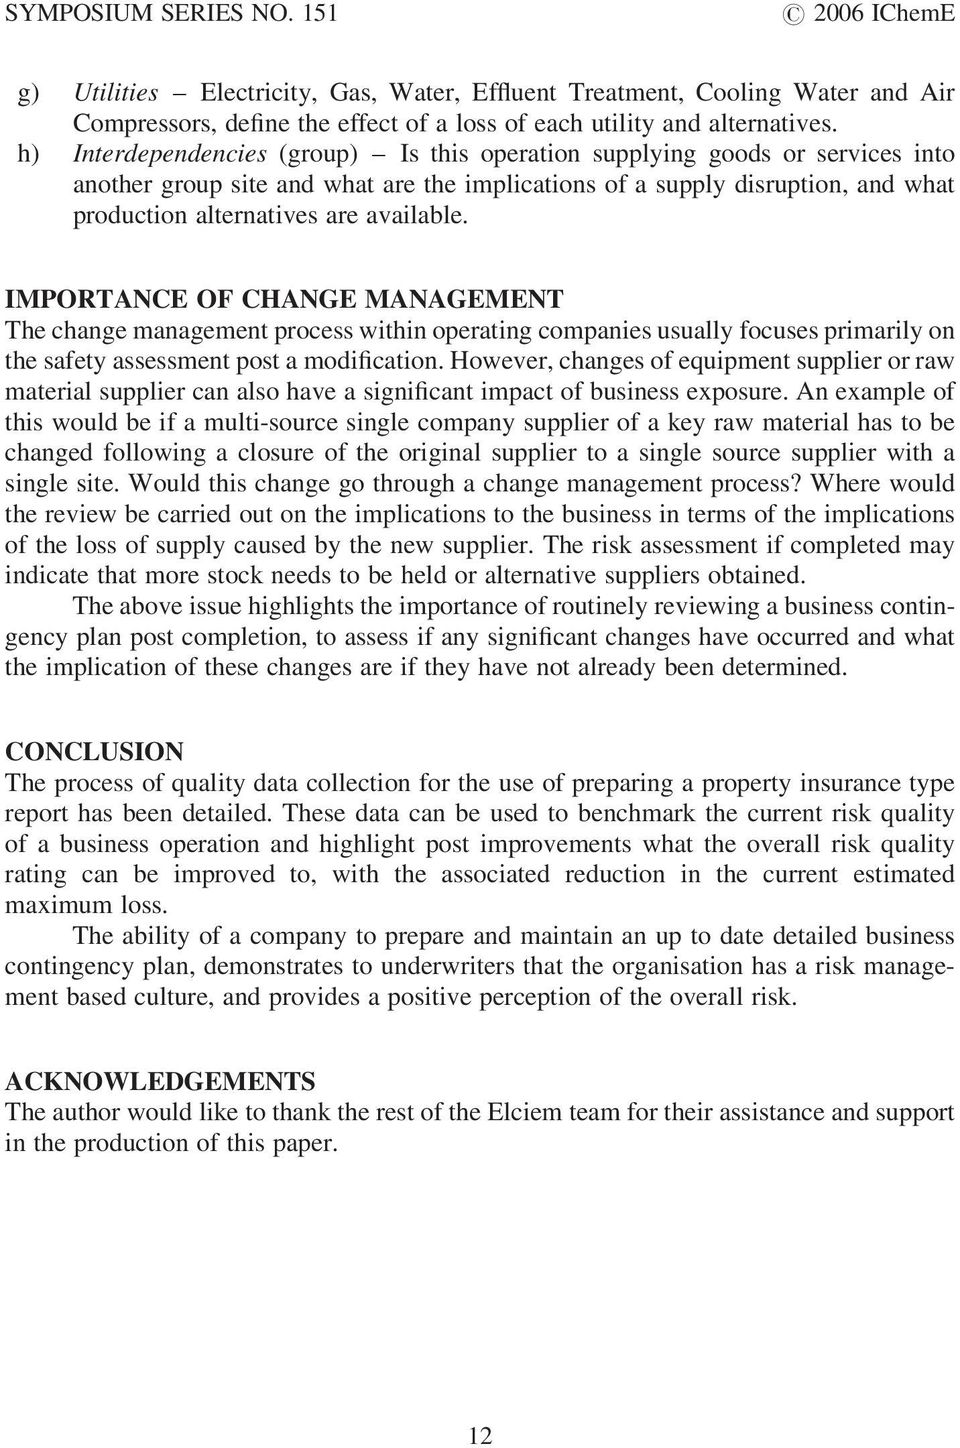 IMPORTANCE OF CHANGE MANAGEMENT The change management process within operating companies usually focuses primarily on the safety assessment post a modification.